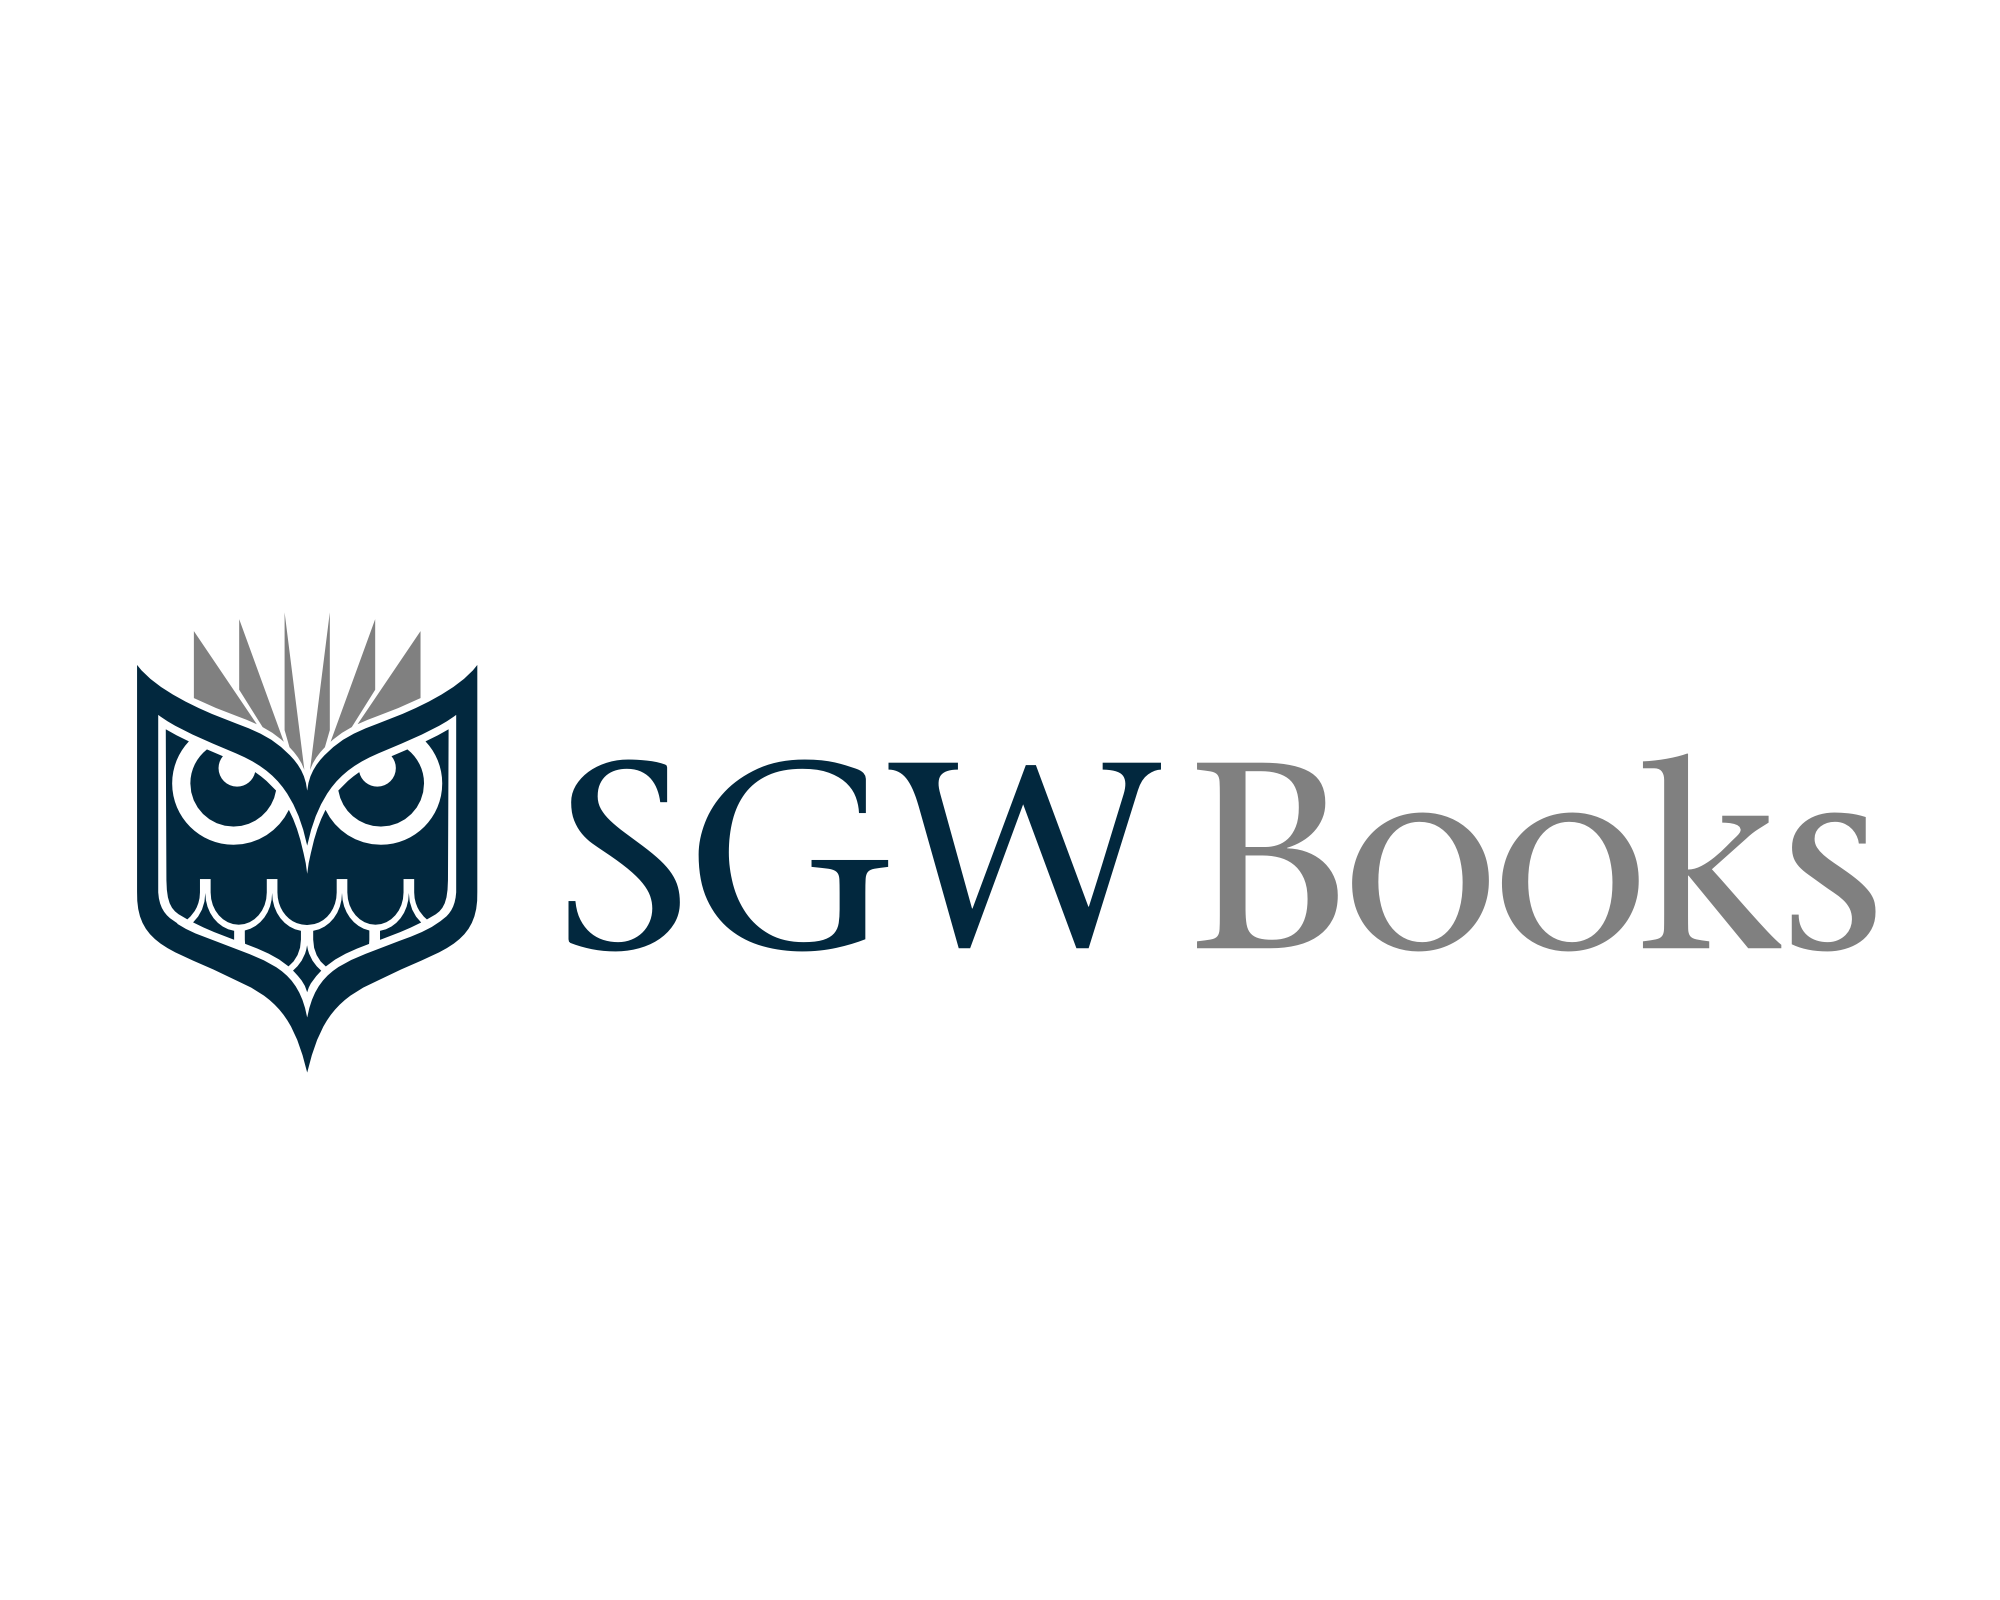 Logo Design by explogos - Entry No. 58 in the Logo Design Contest SGW Books Logo Design.